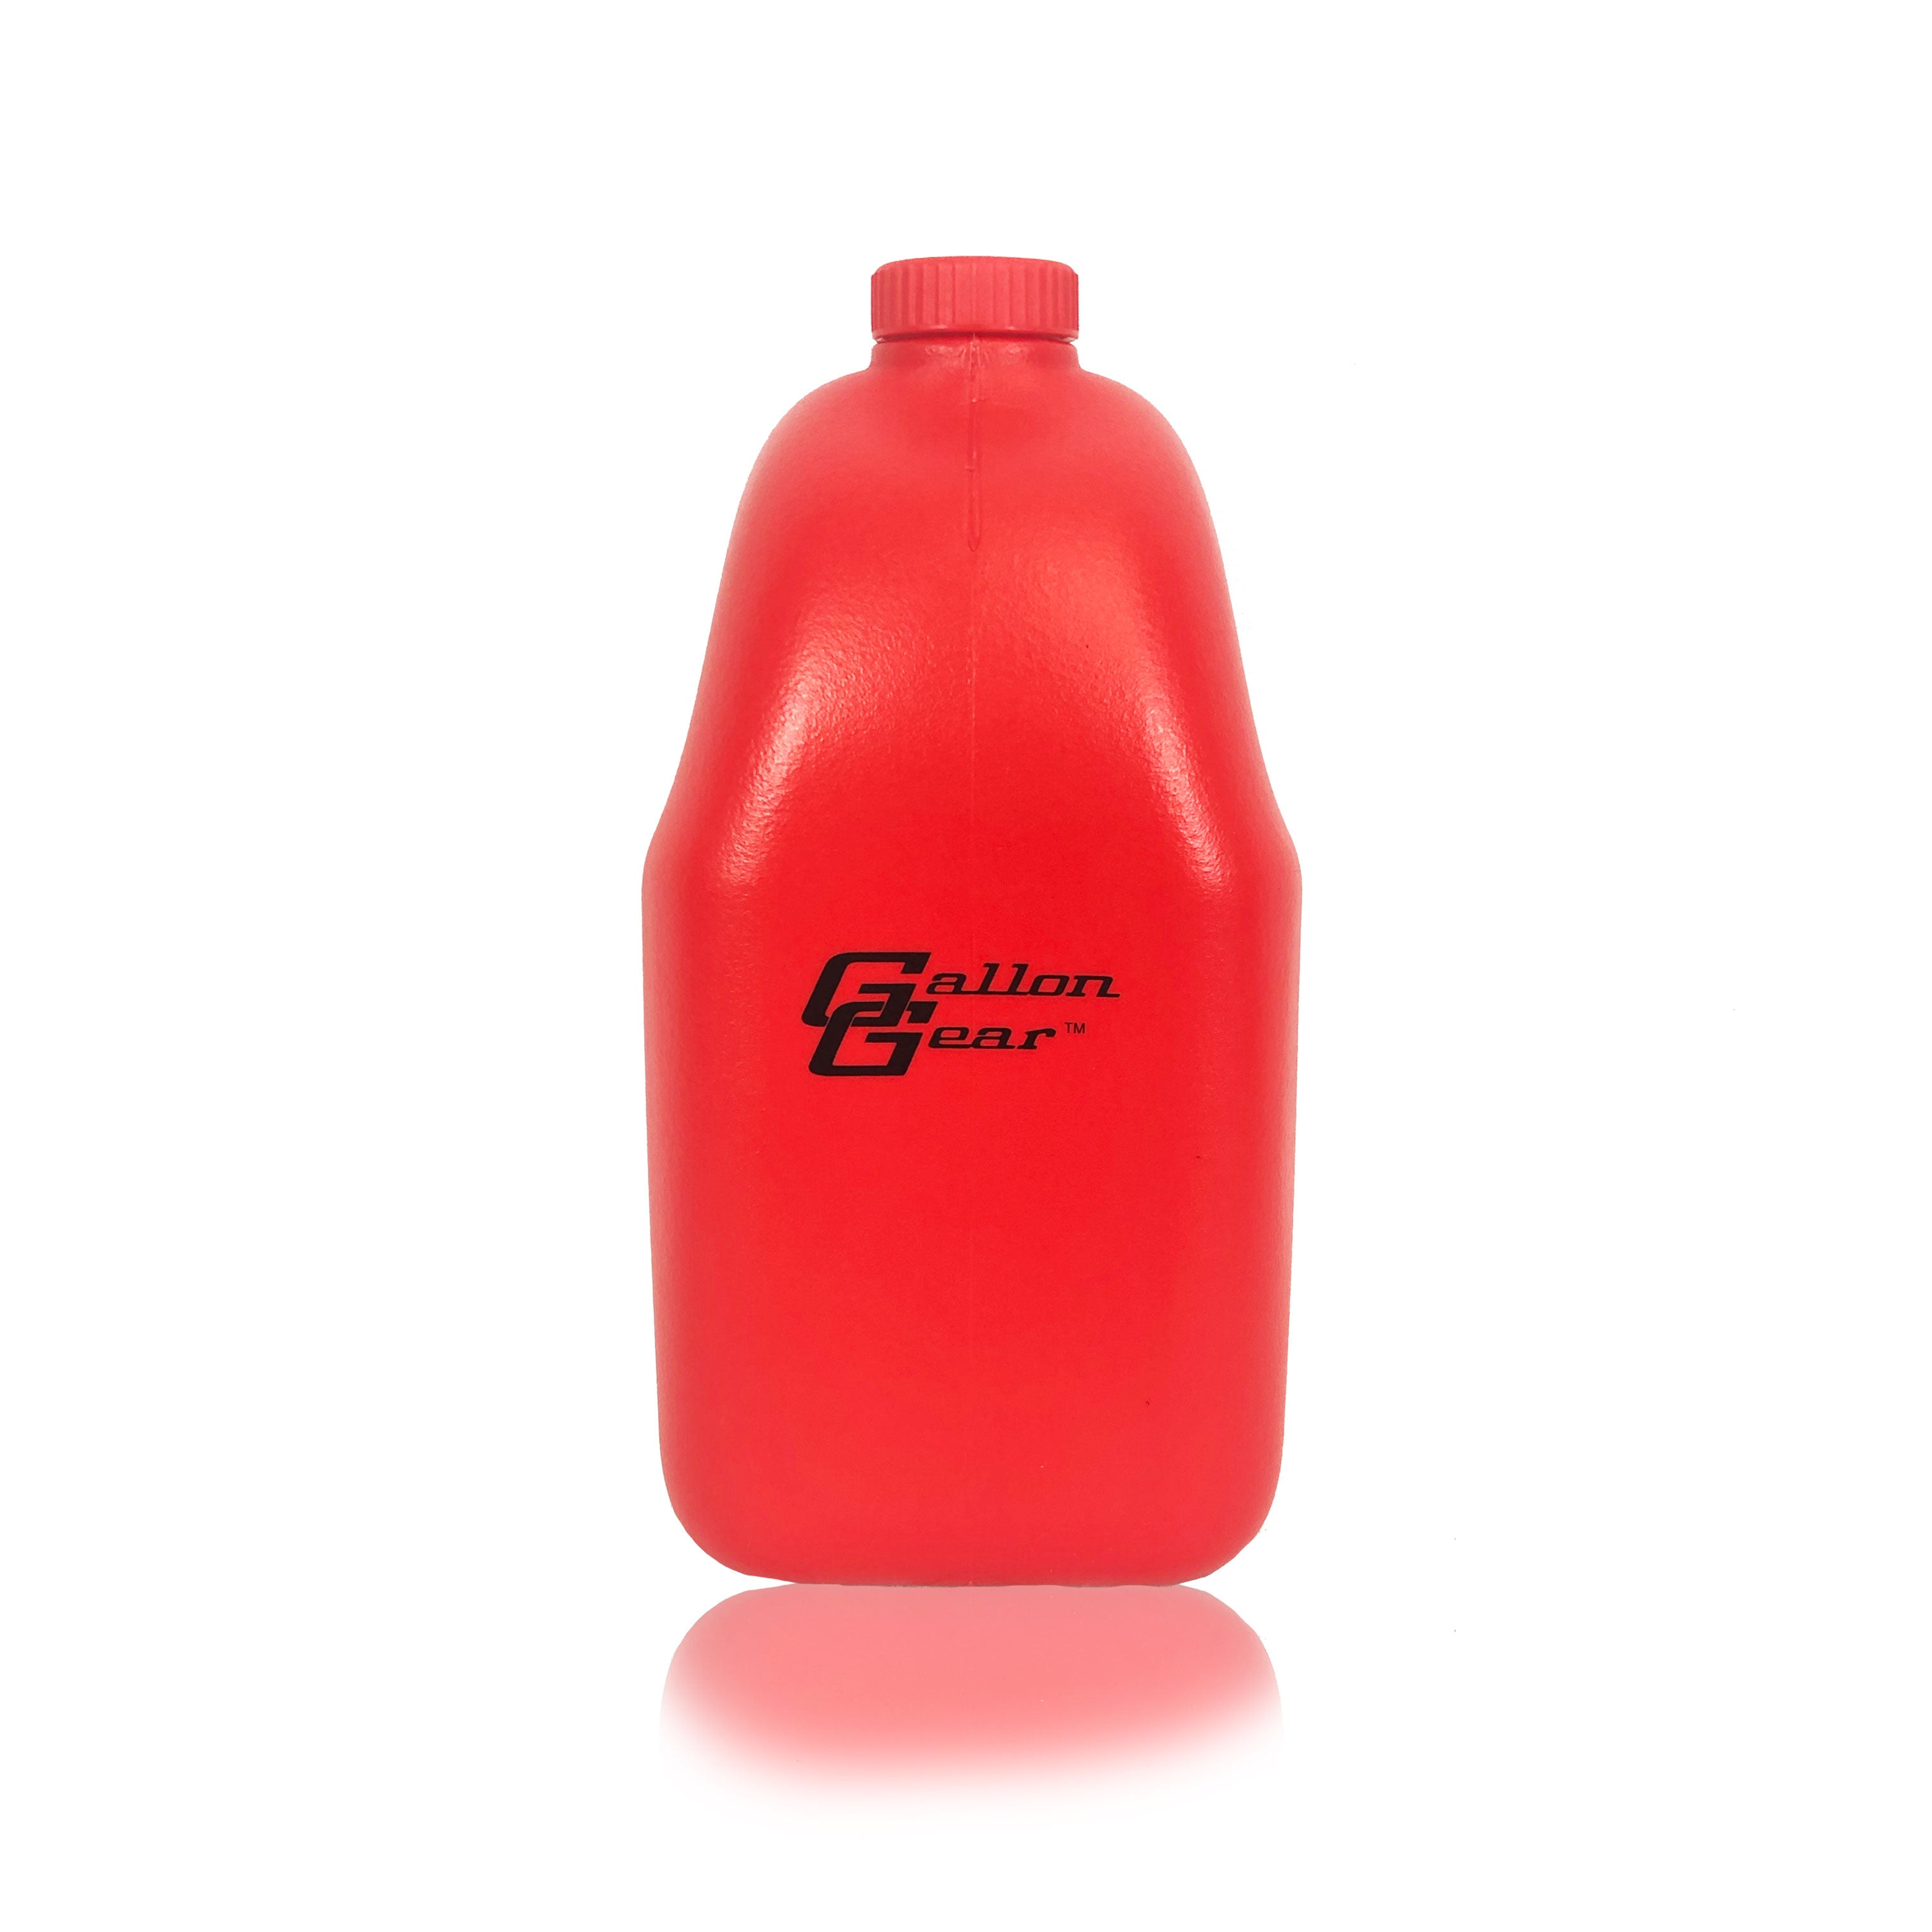 Gallon Gear 1/2 Red Gallon Bottle